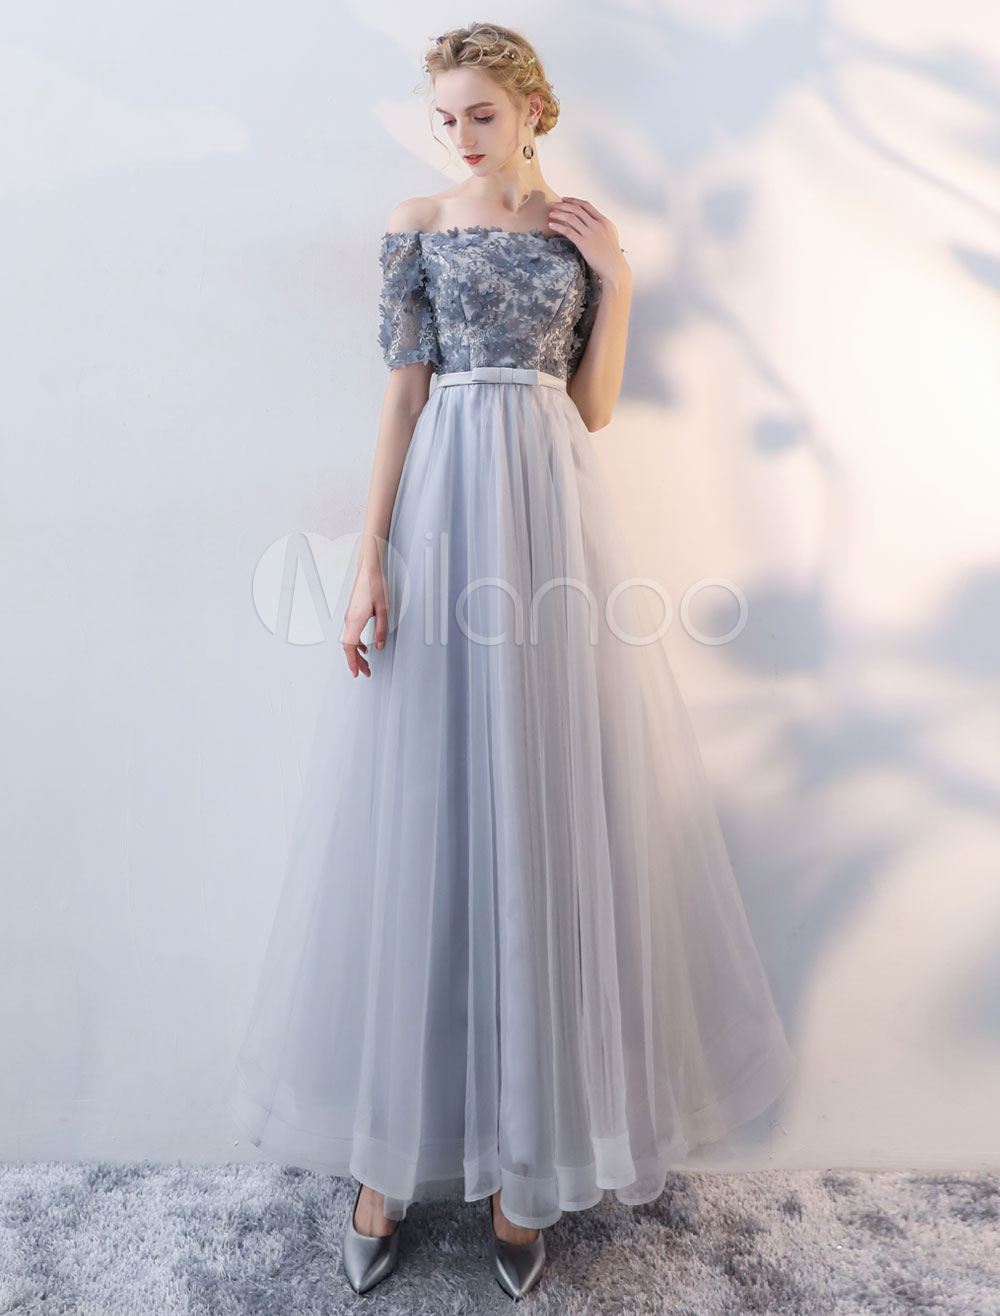 Buy Prom Dresses Long Grey Off The Shoulder Flowers Beaded Bow Sash Half Sleeve Floor Length Occasion Dress for $118.79 in Milanoo store